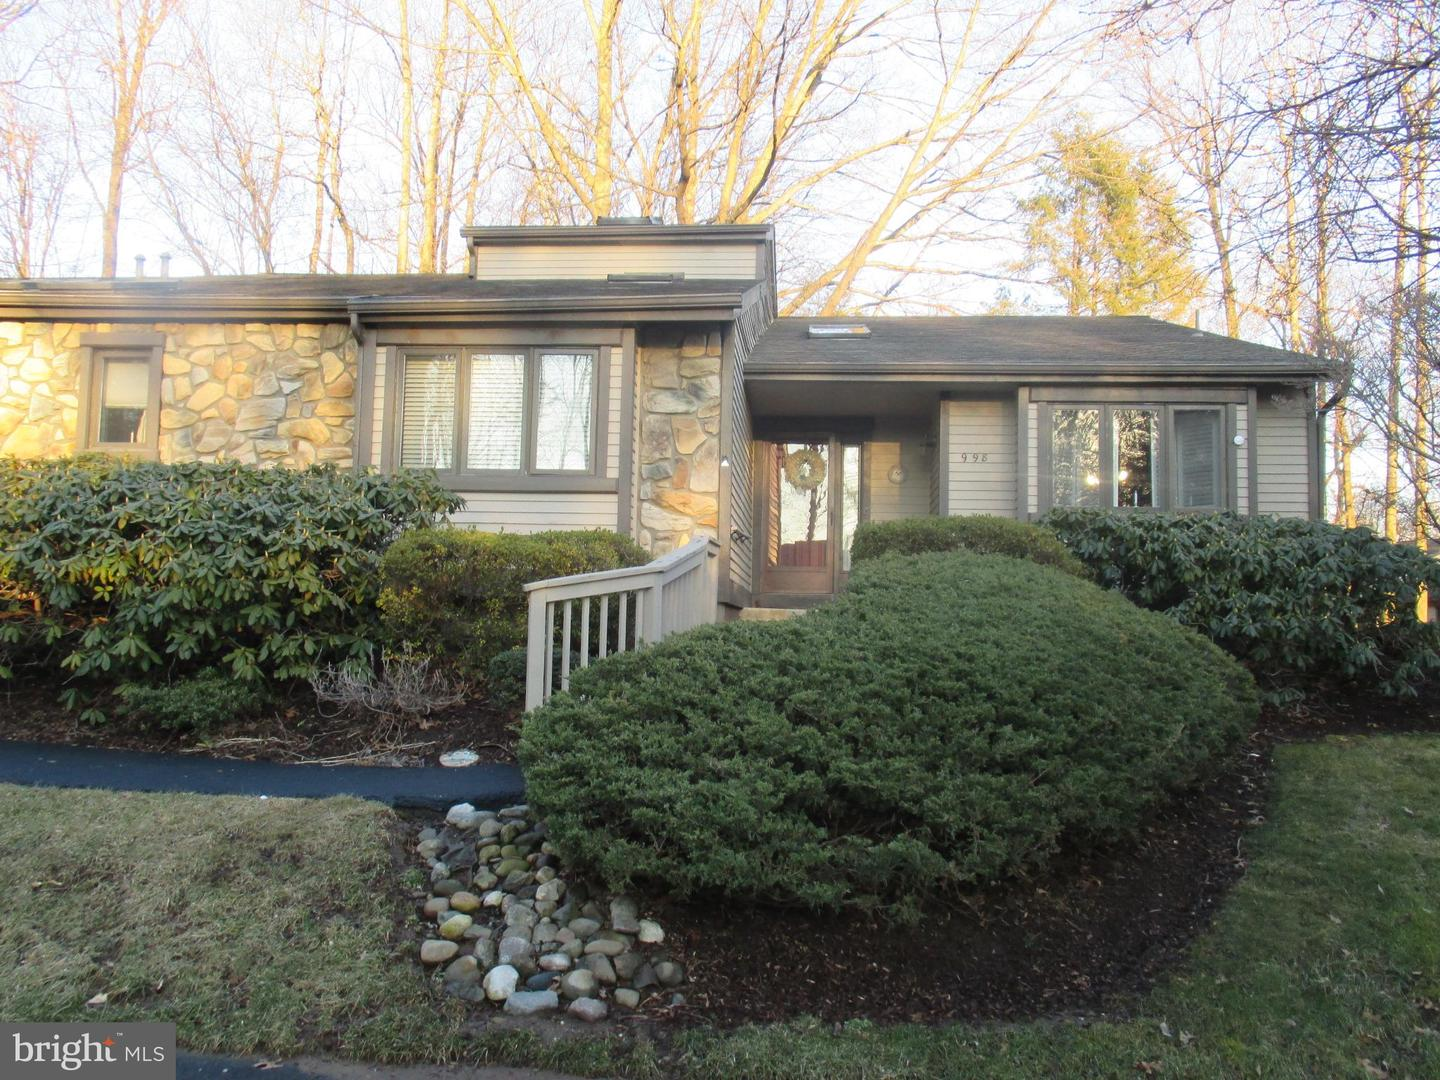 998 Kennett Way West Chester, PA 19380